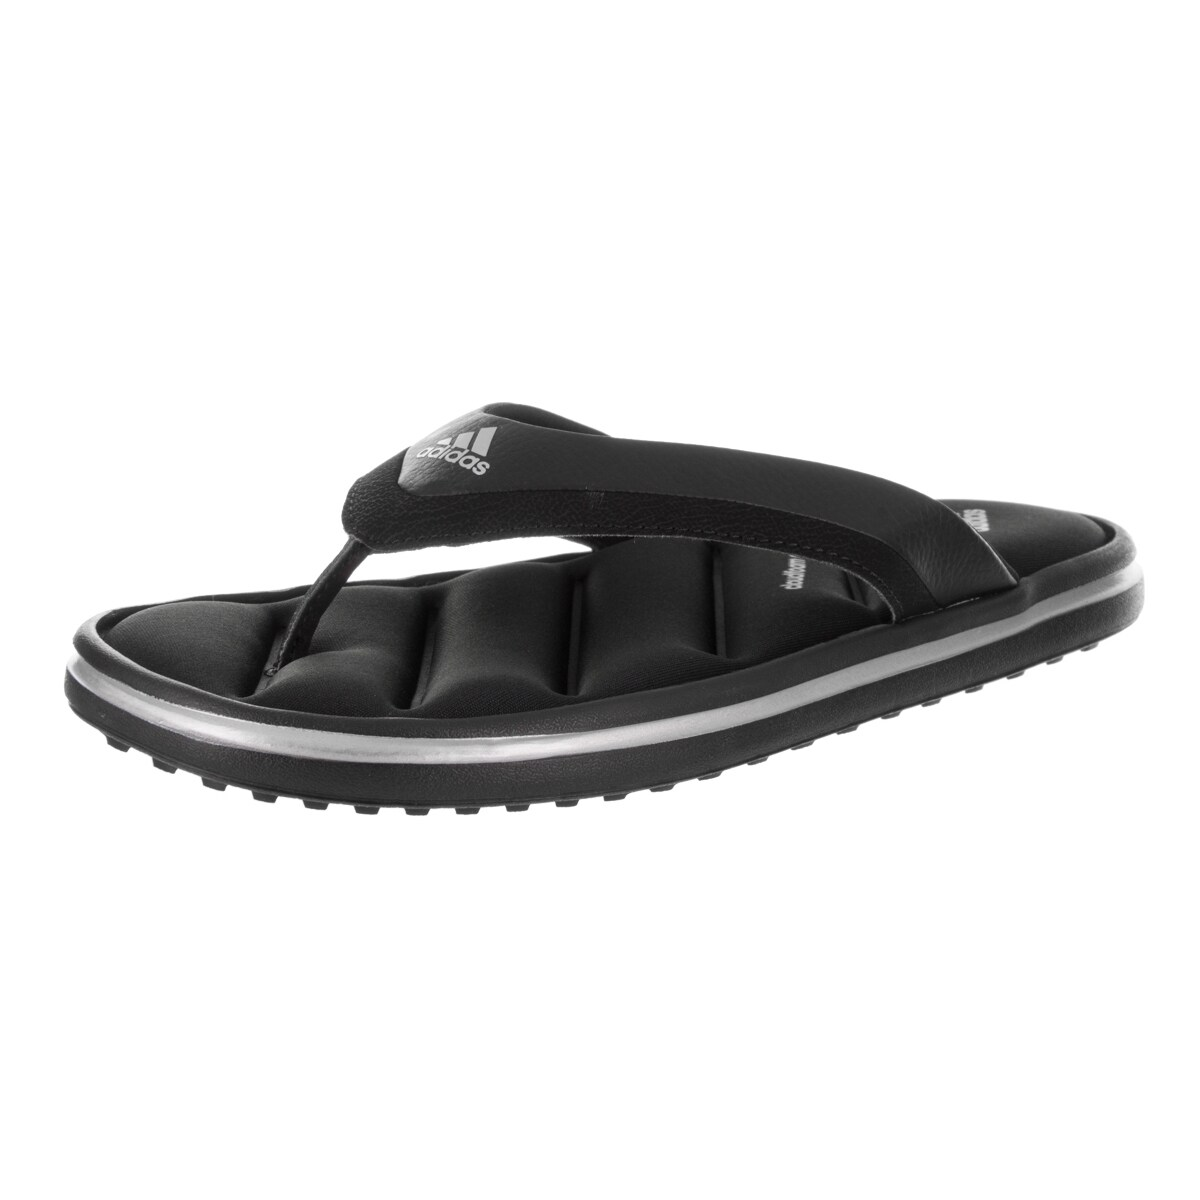 5cdfa5f8d Shop Adidas Men s Zeitfrei CF Ultra Y Sandal - Free Shipping On Orders Over   45 - Overstock - 15858372